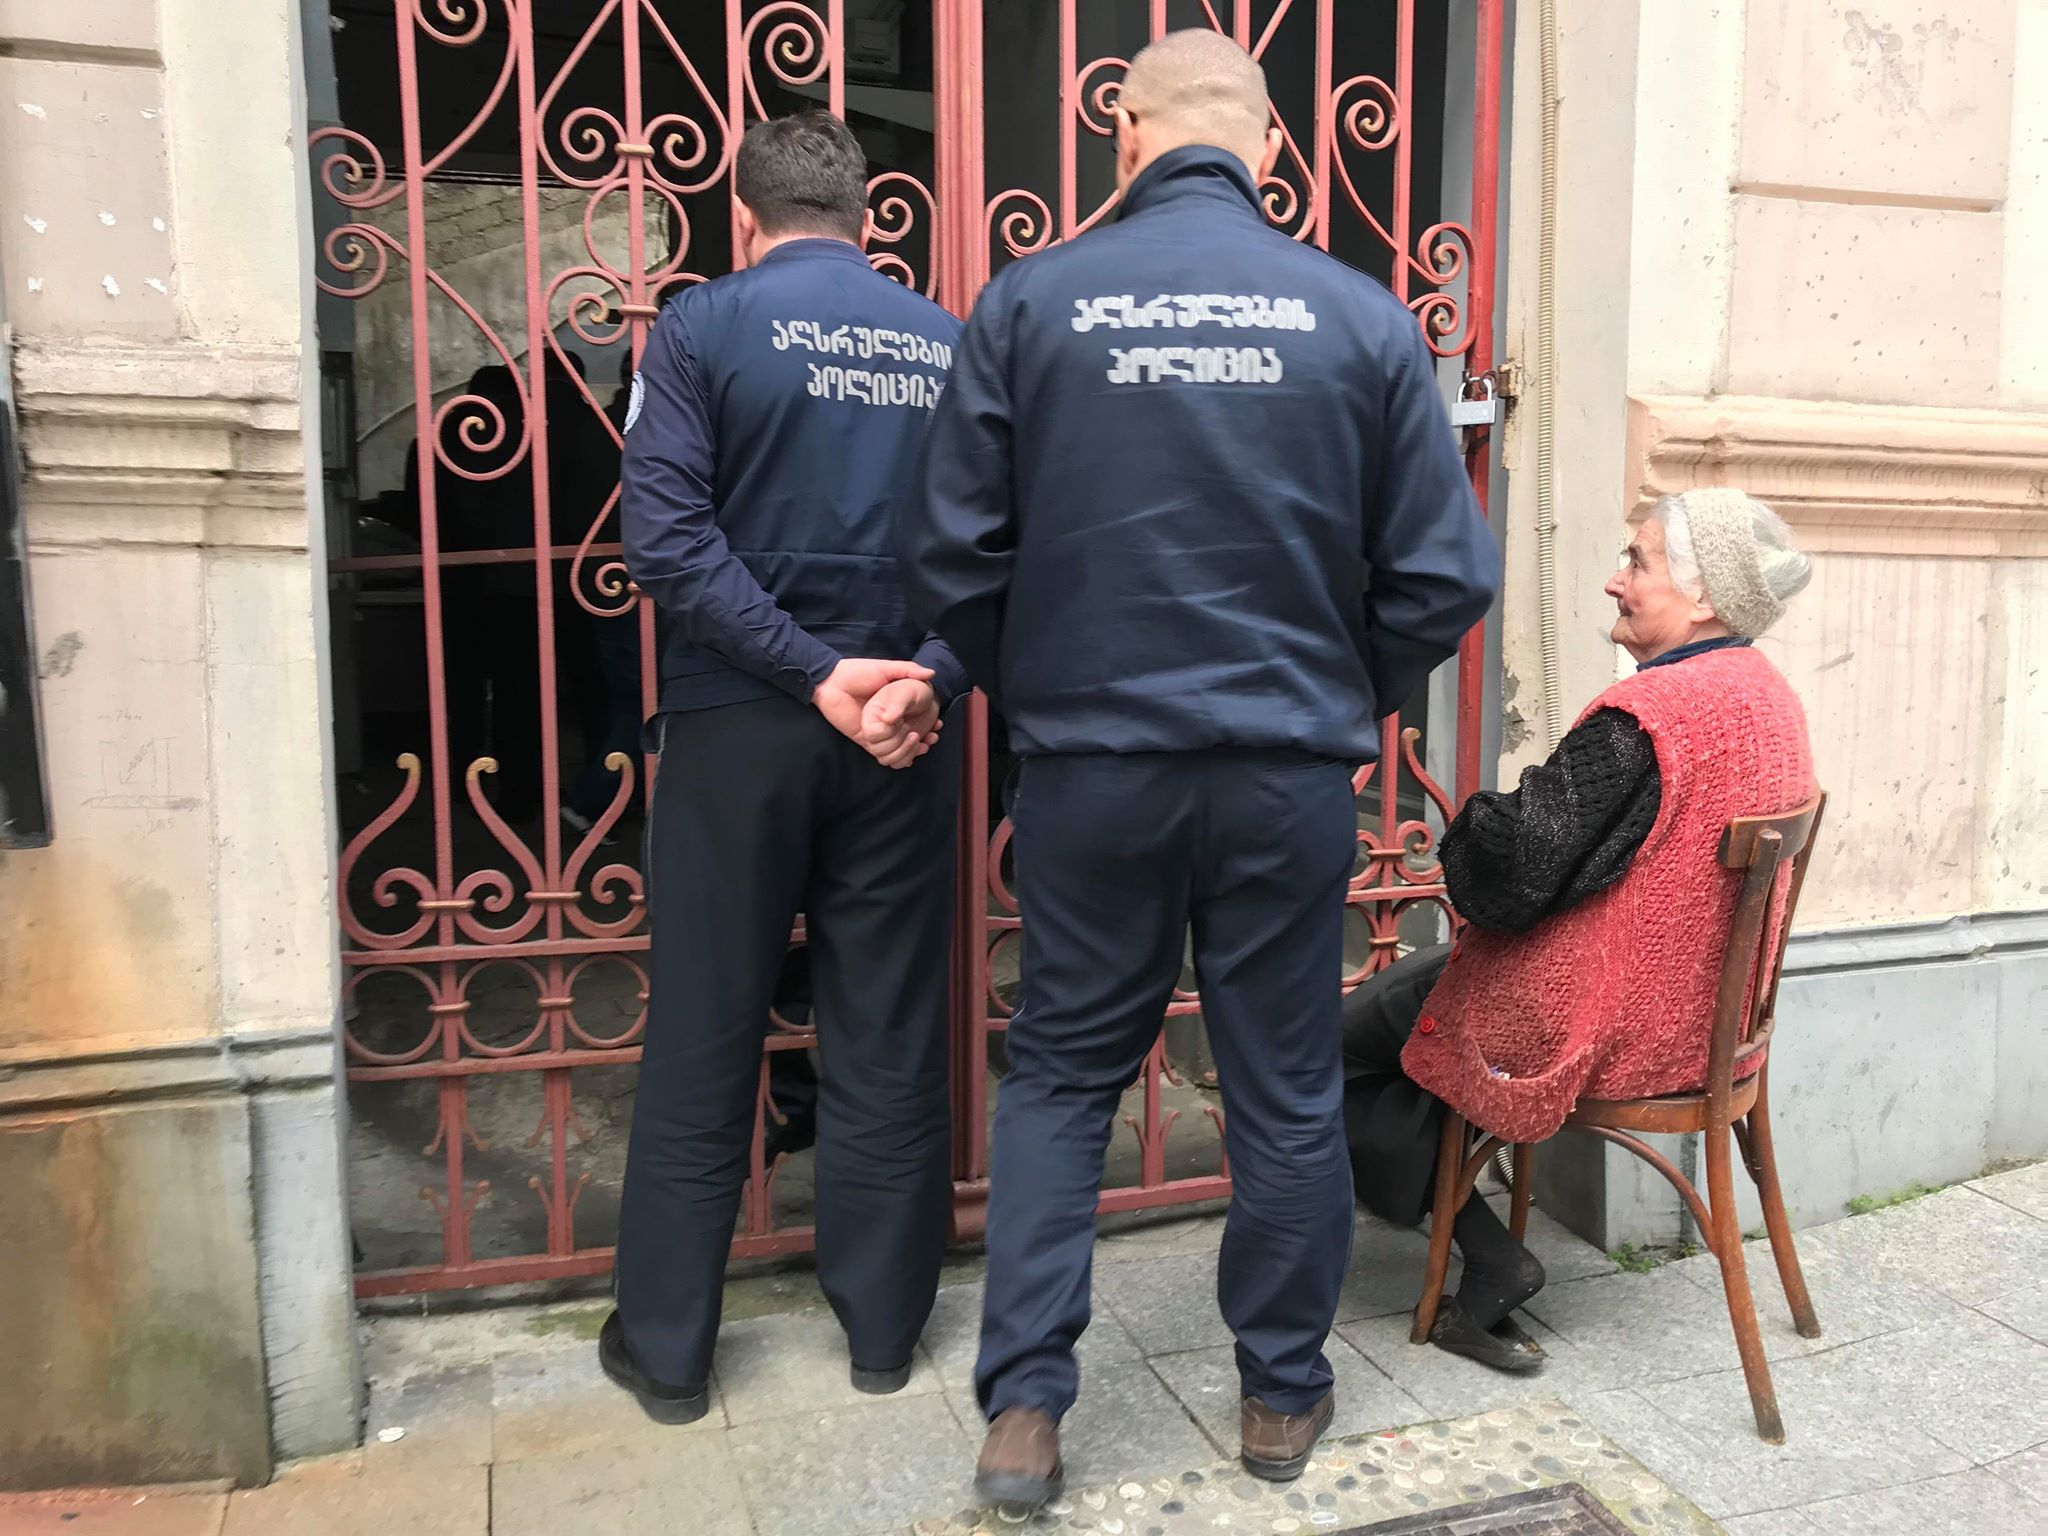 An 82-year-old woman was forced to leave her home